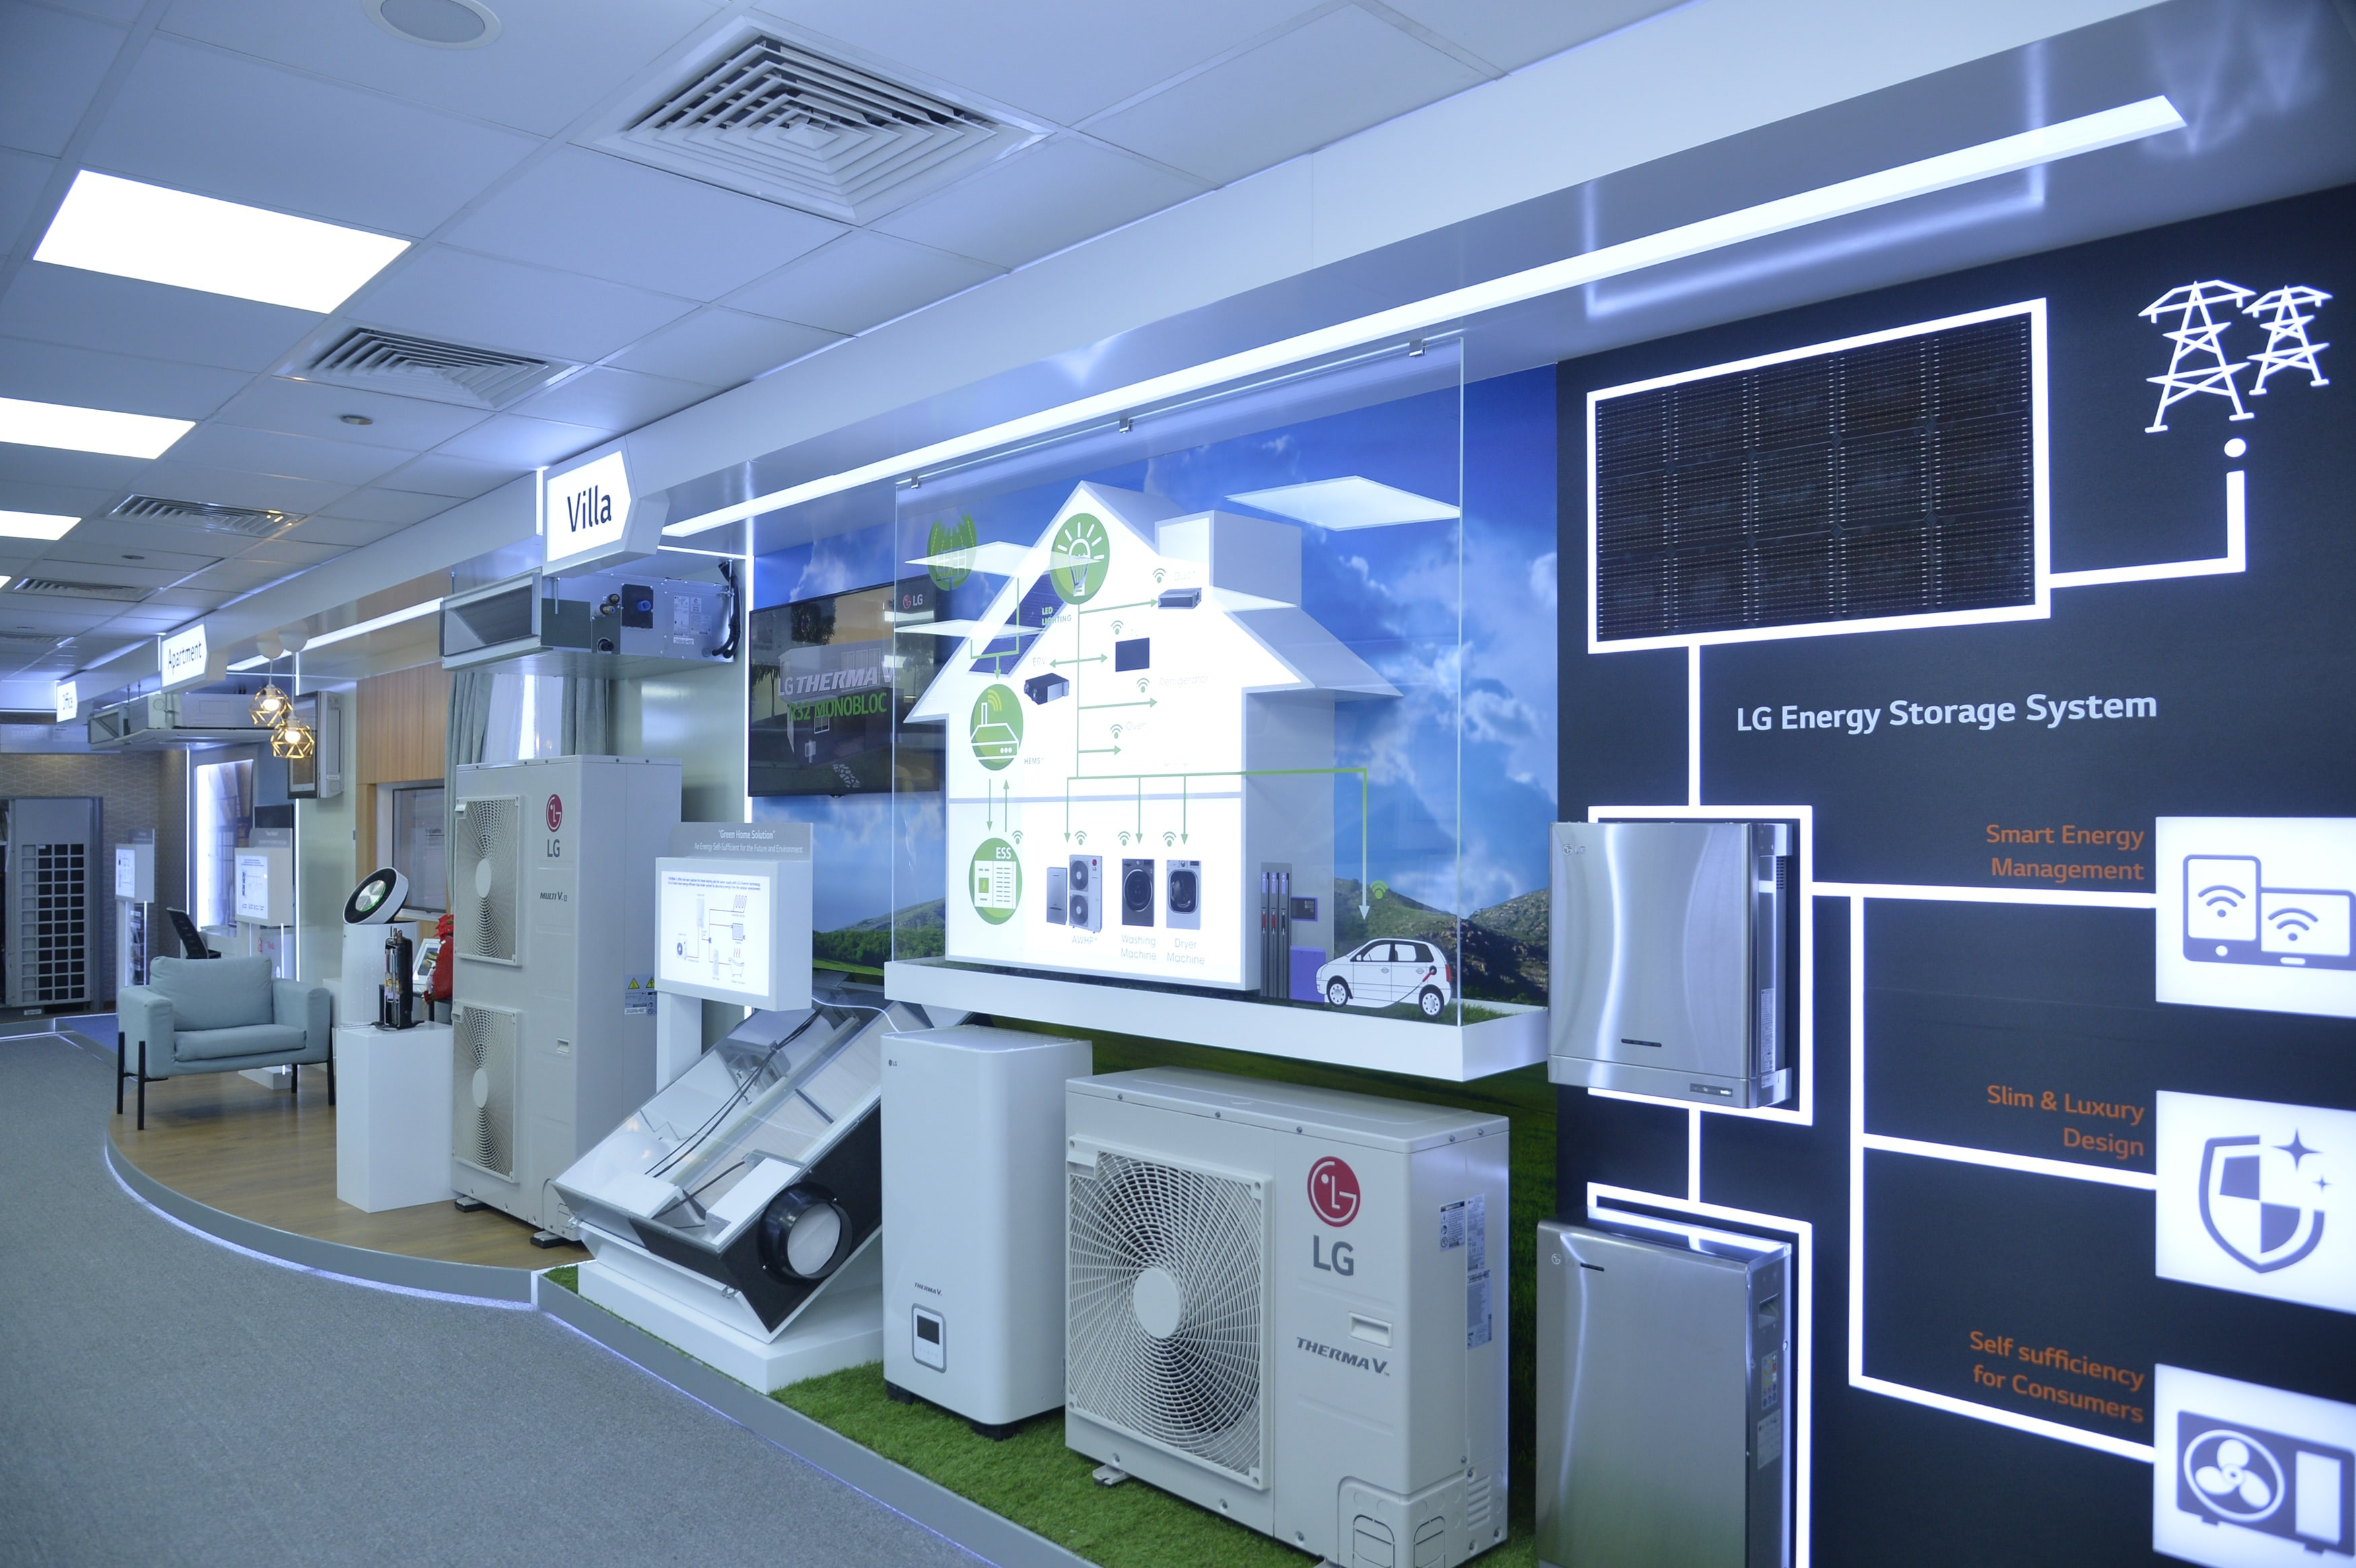 LG Electronics to Lead the Smart Energy Industry with its